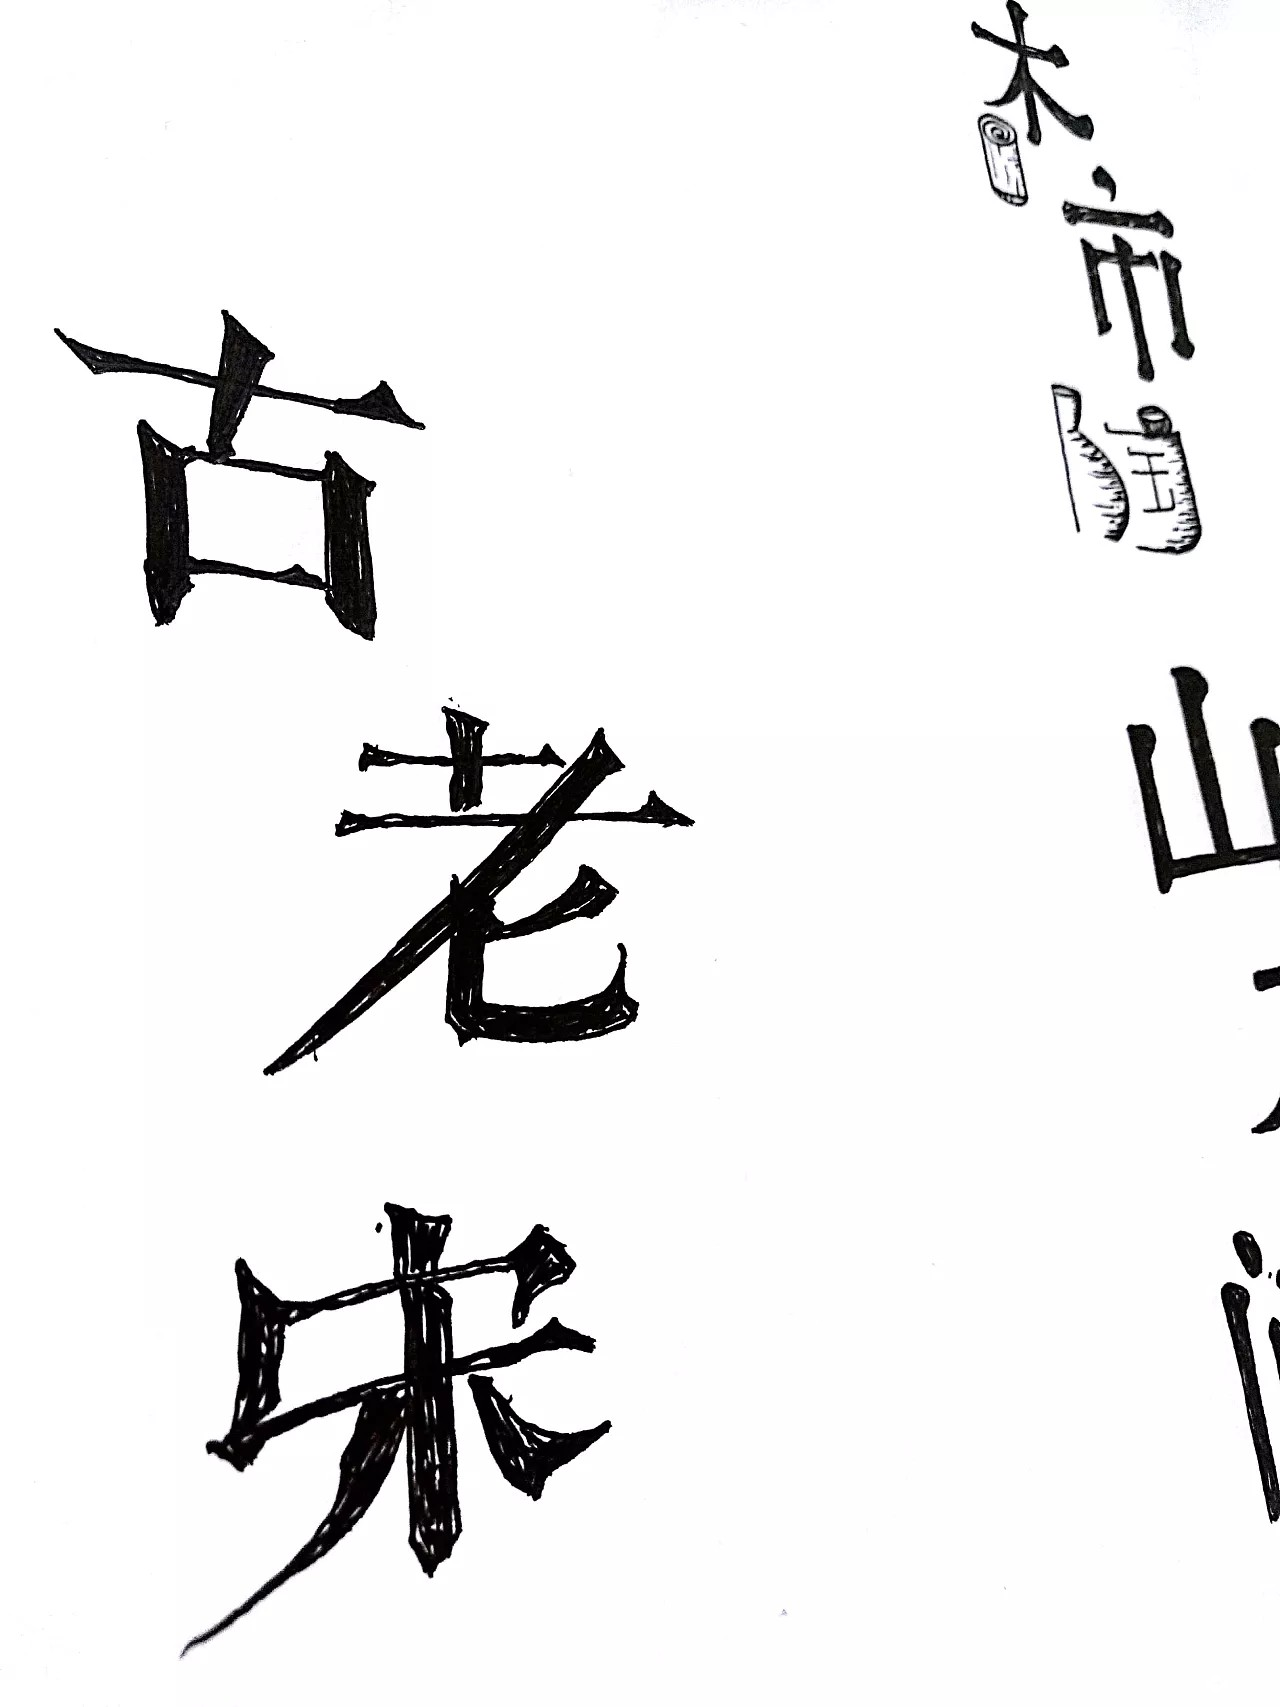 chinesefontdesign.com 2018 04 04 07 29 44 125944 18P Wonderful handwritten art chinese font design